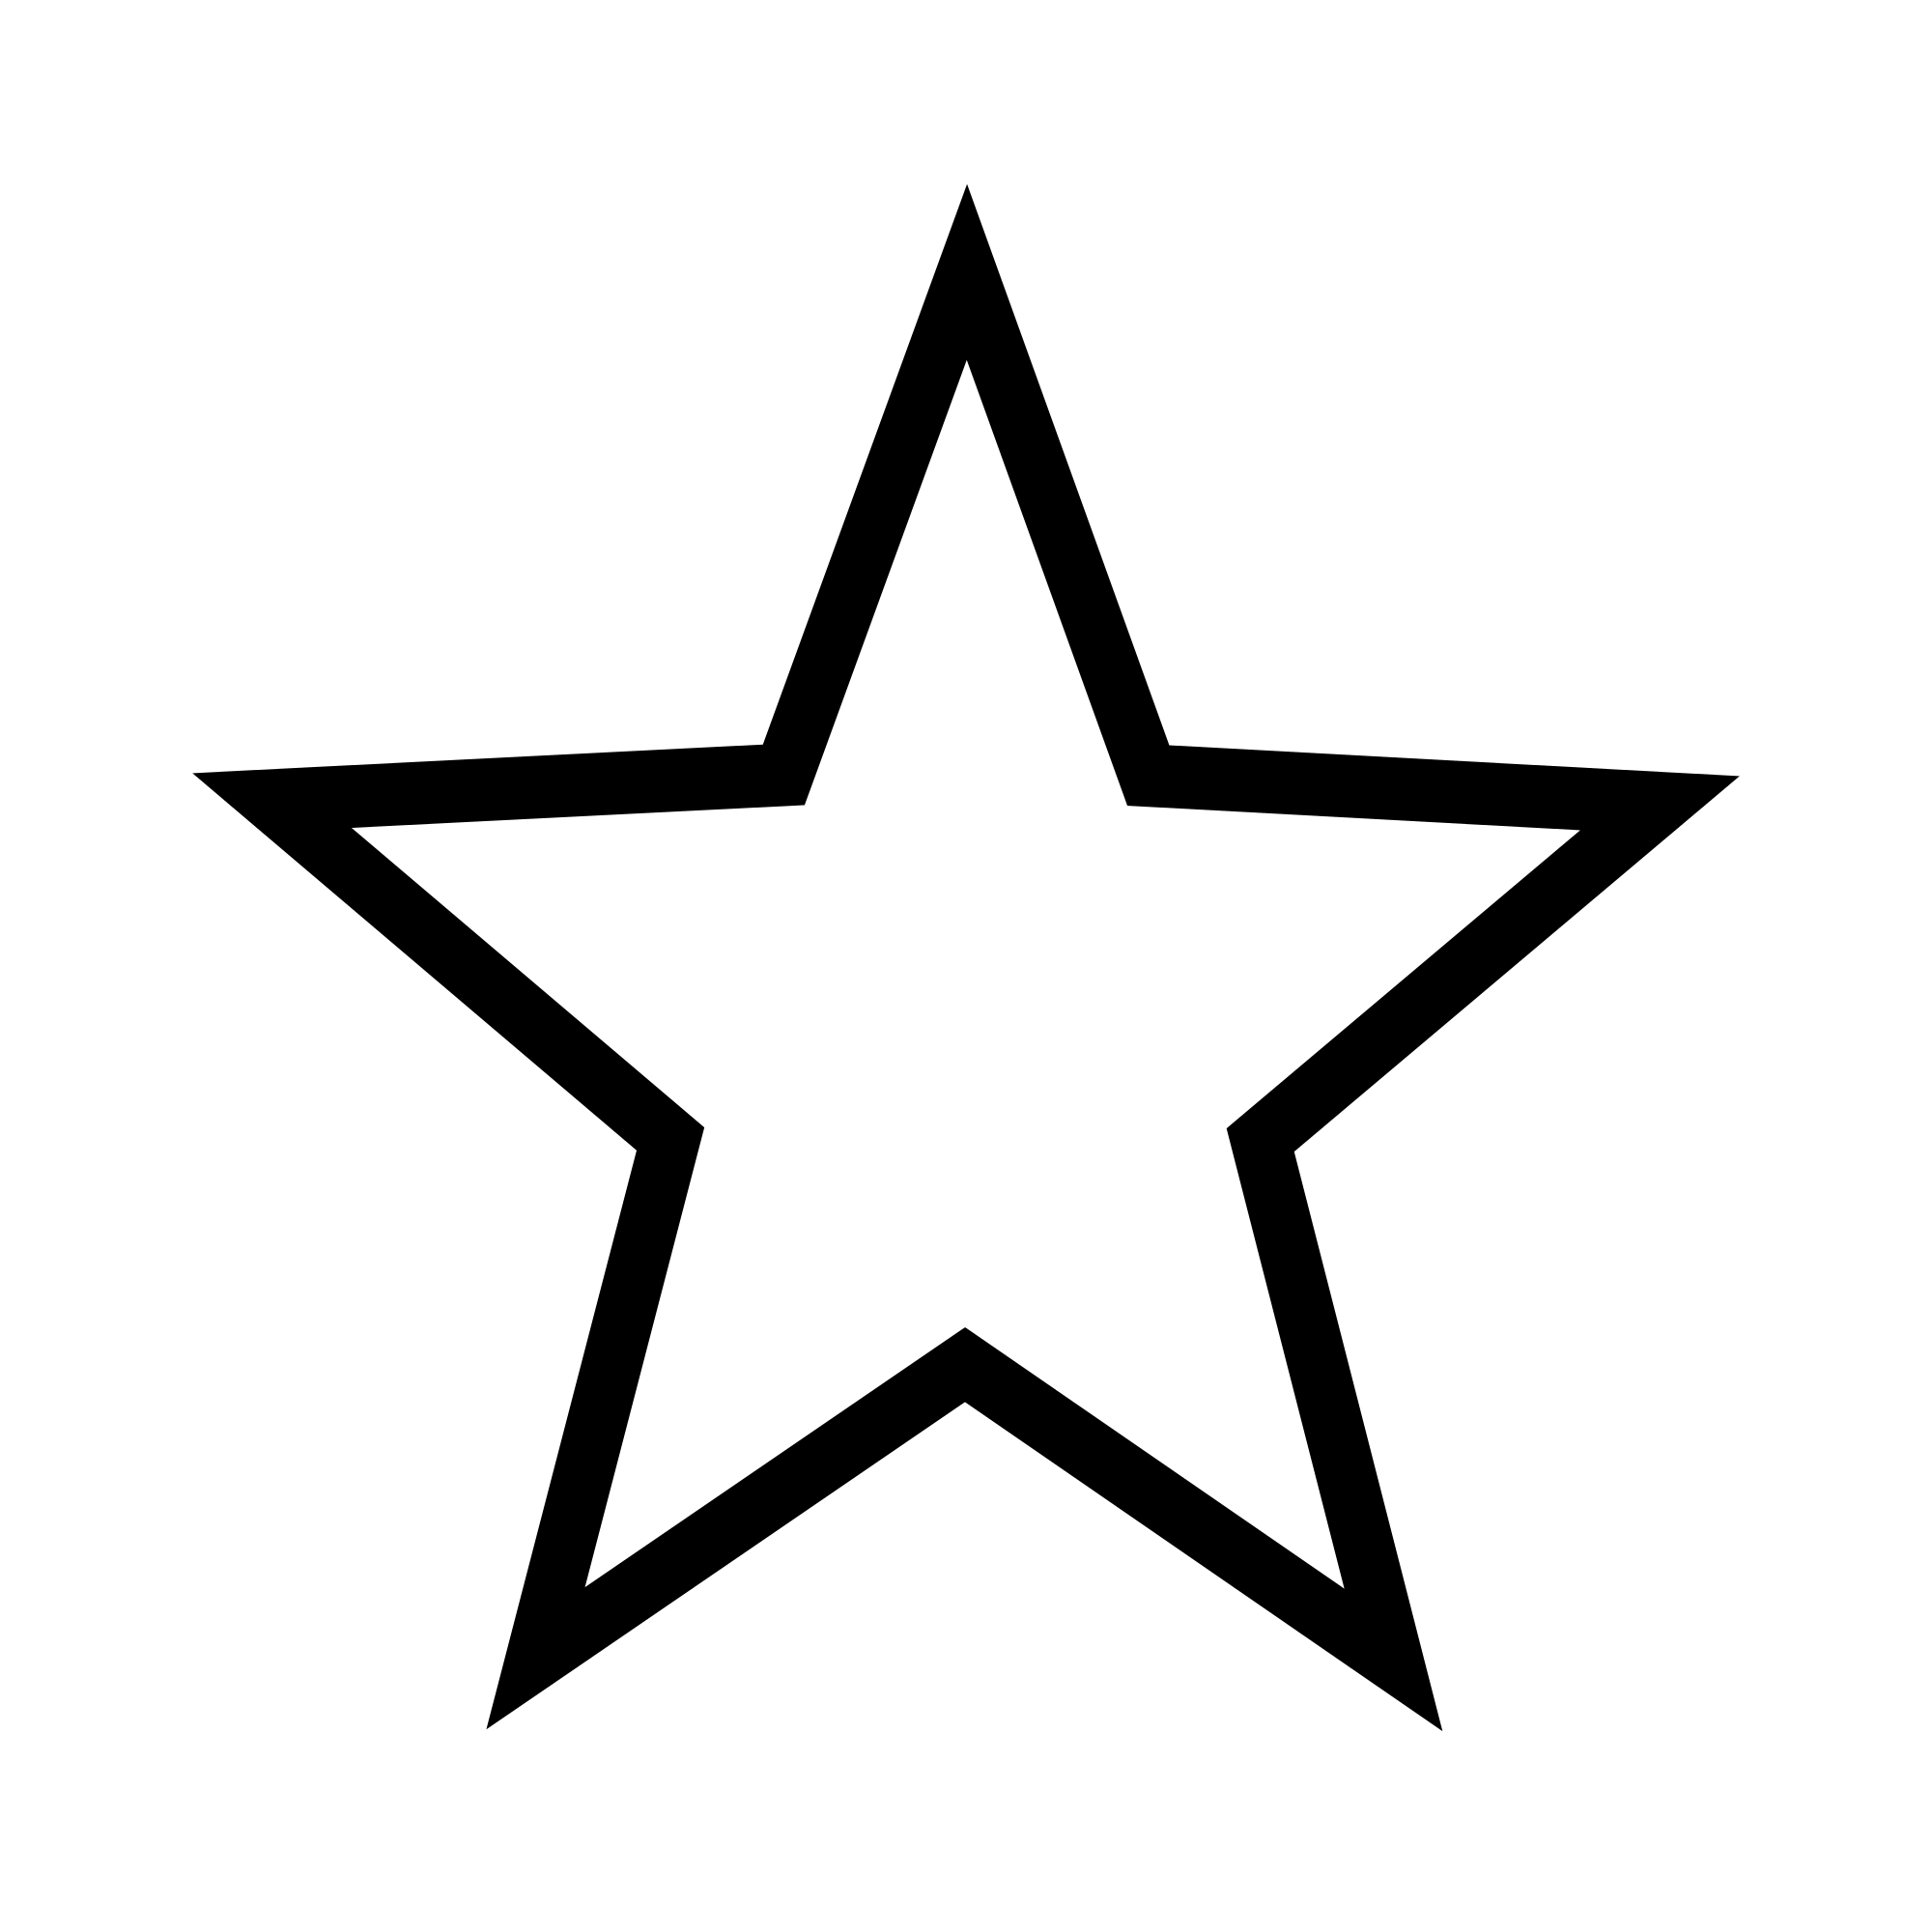 white star png transparent background #63713342